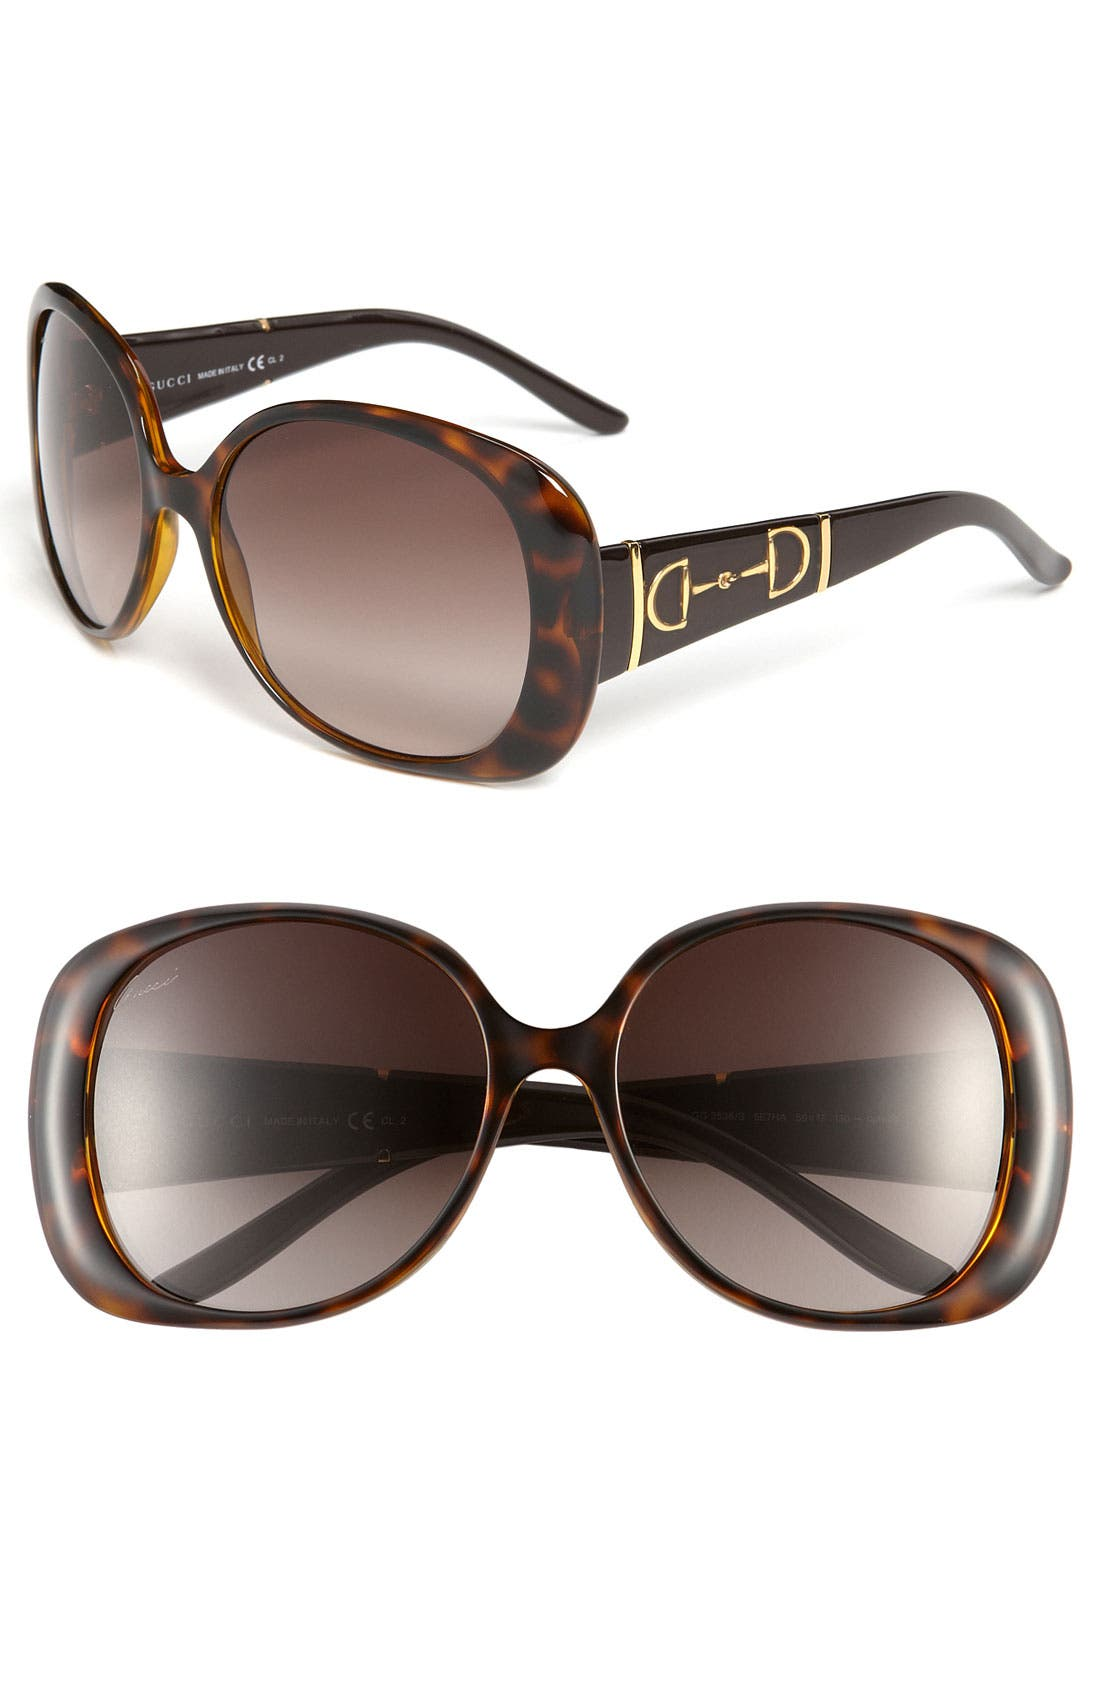 Alternate Image 1 Selected - Gucci Oversized Sunglasses